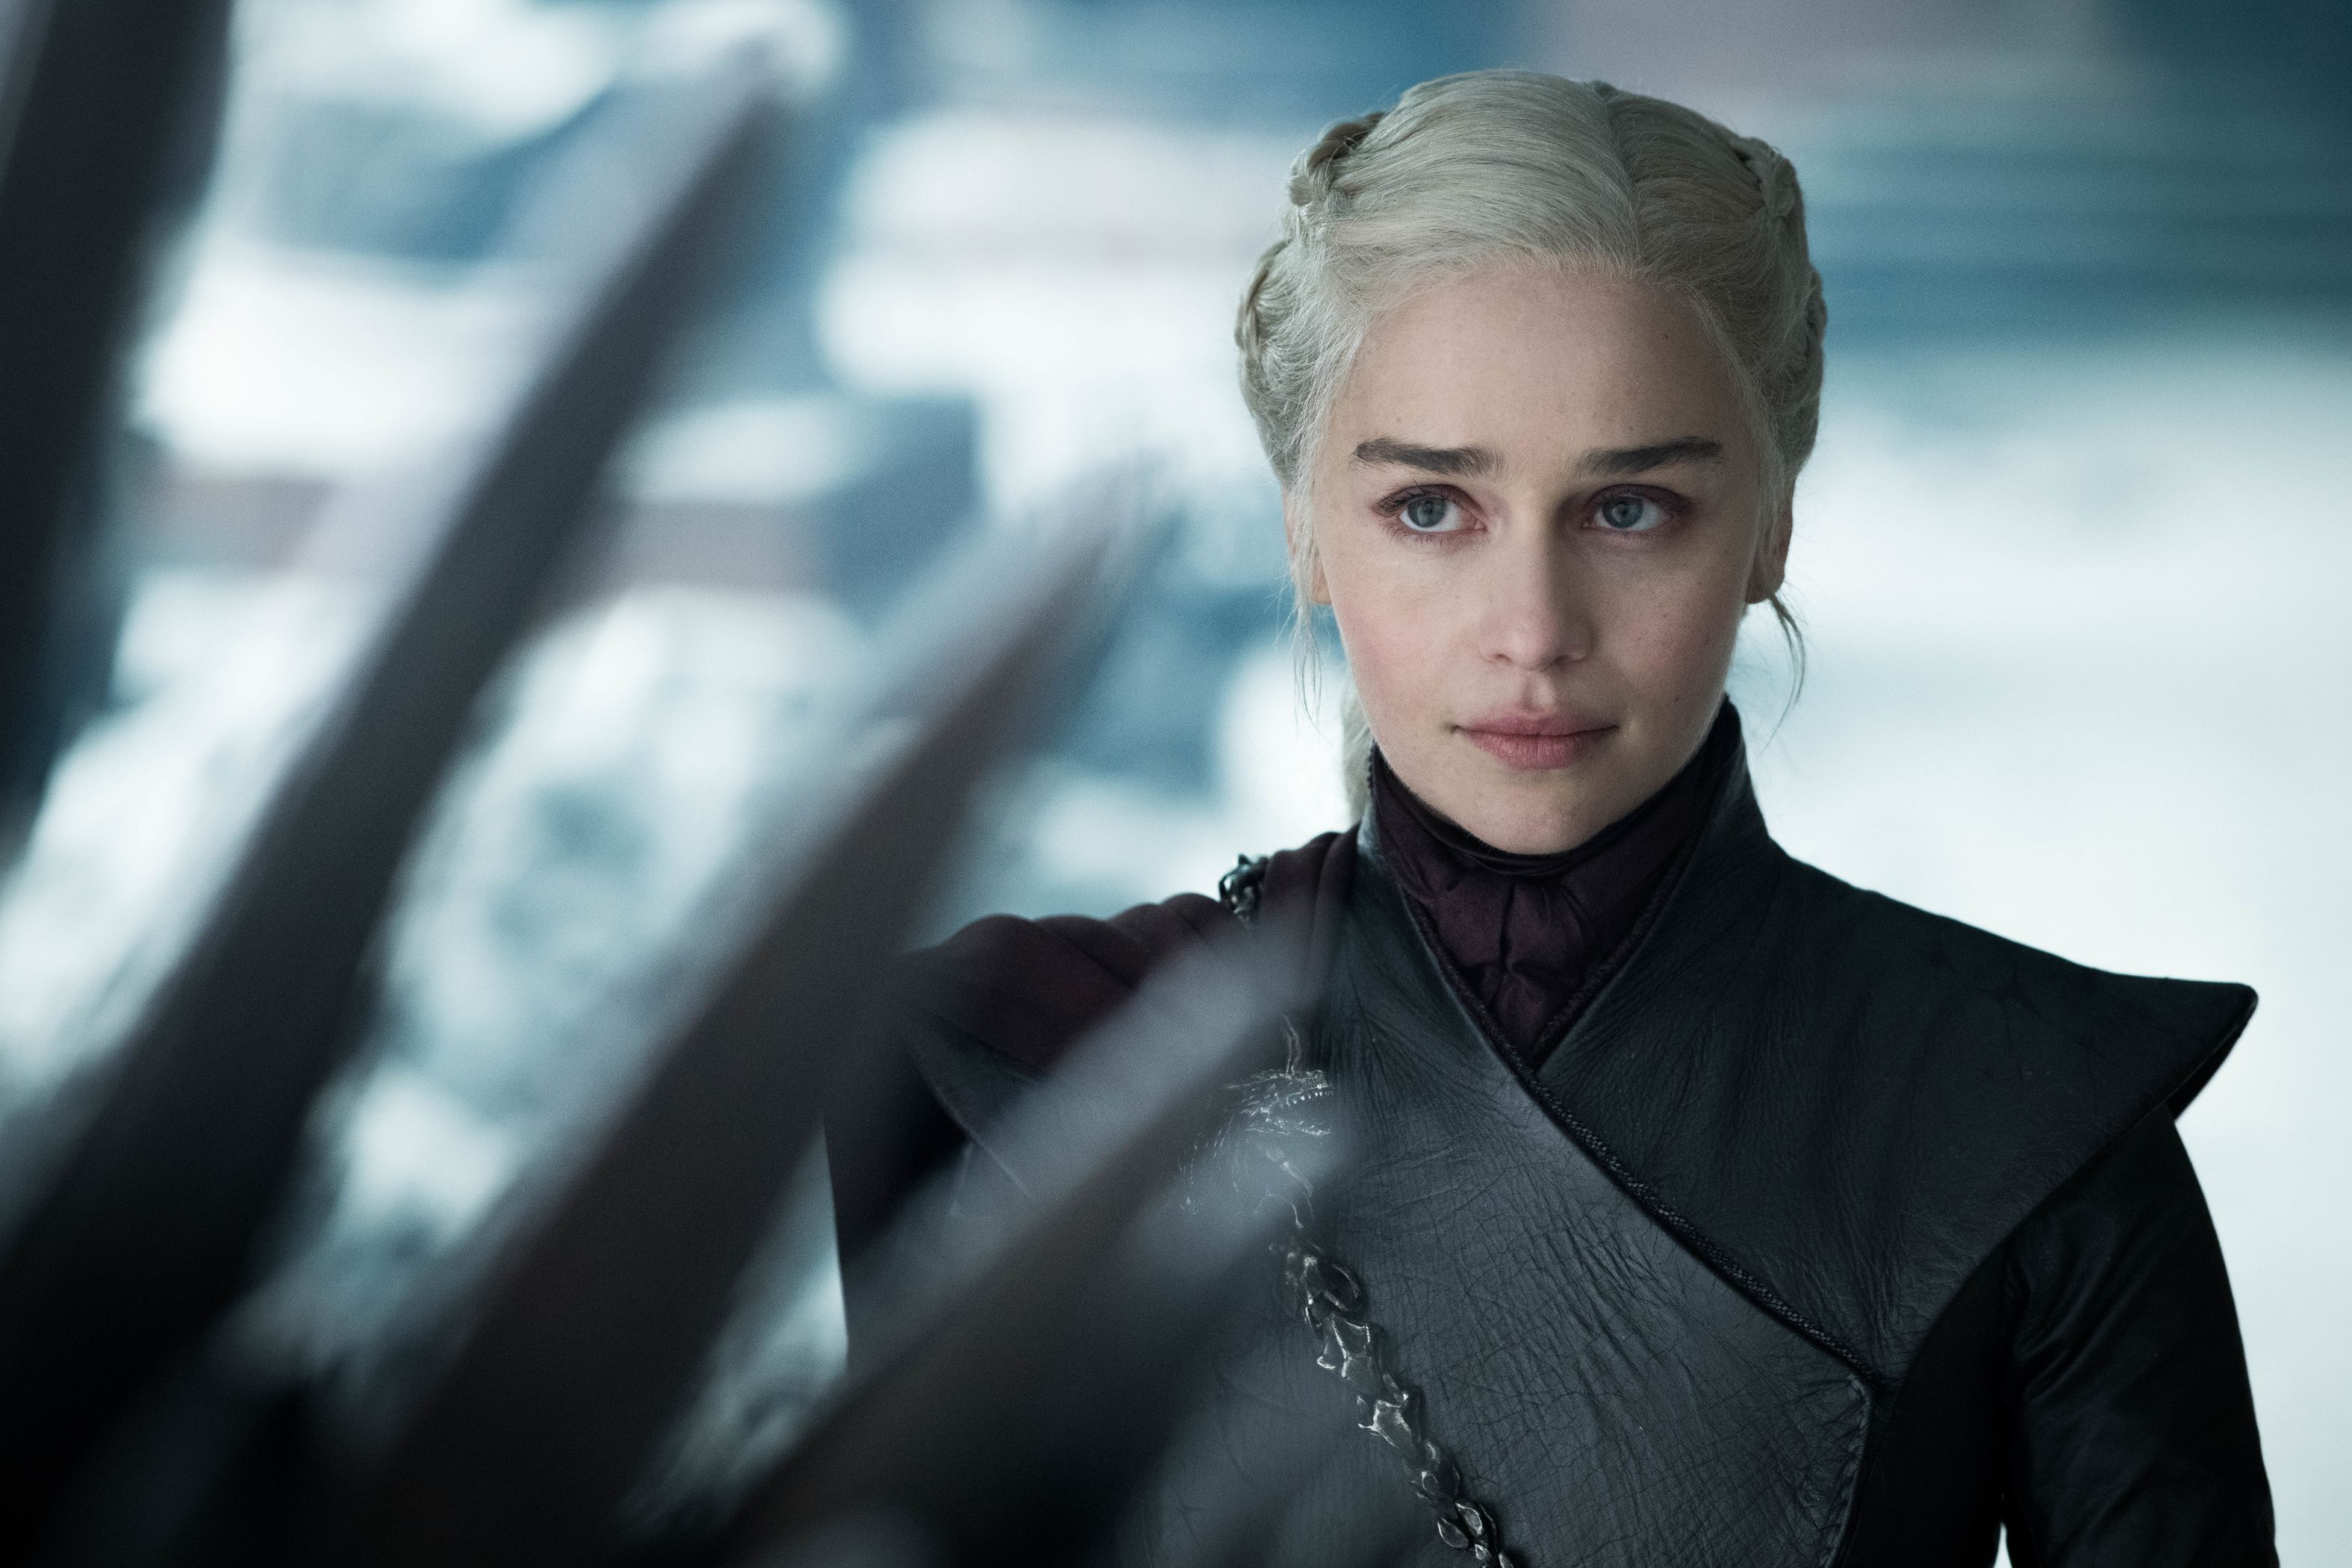 Emilia Clarke on How She'd Remake Daenerys' Storyline in 'Game of Thrones' Season 8